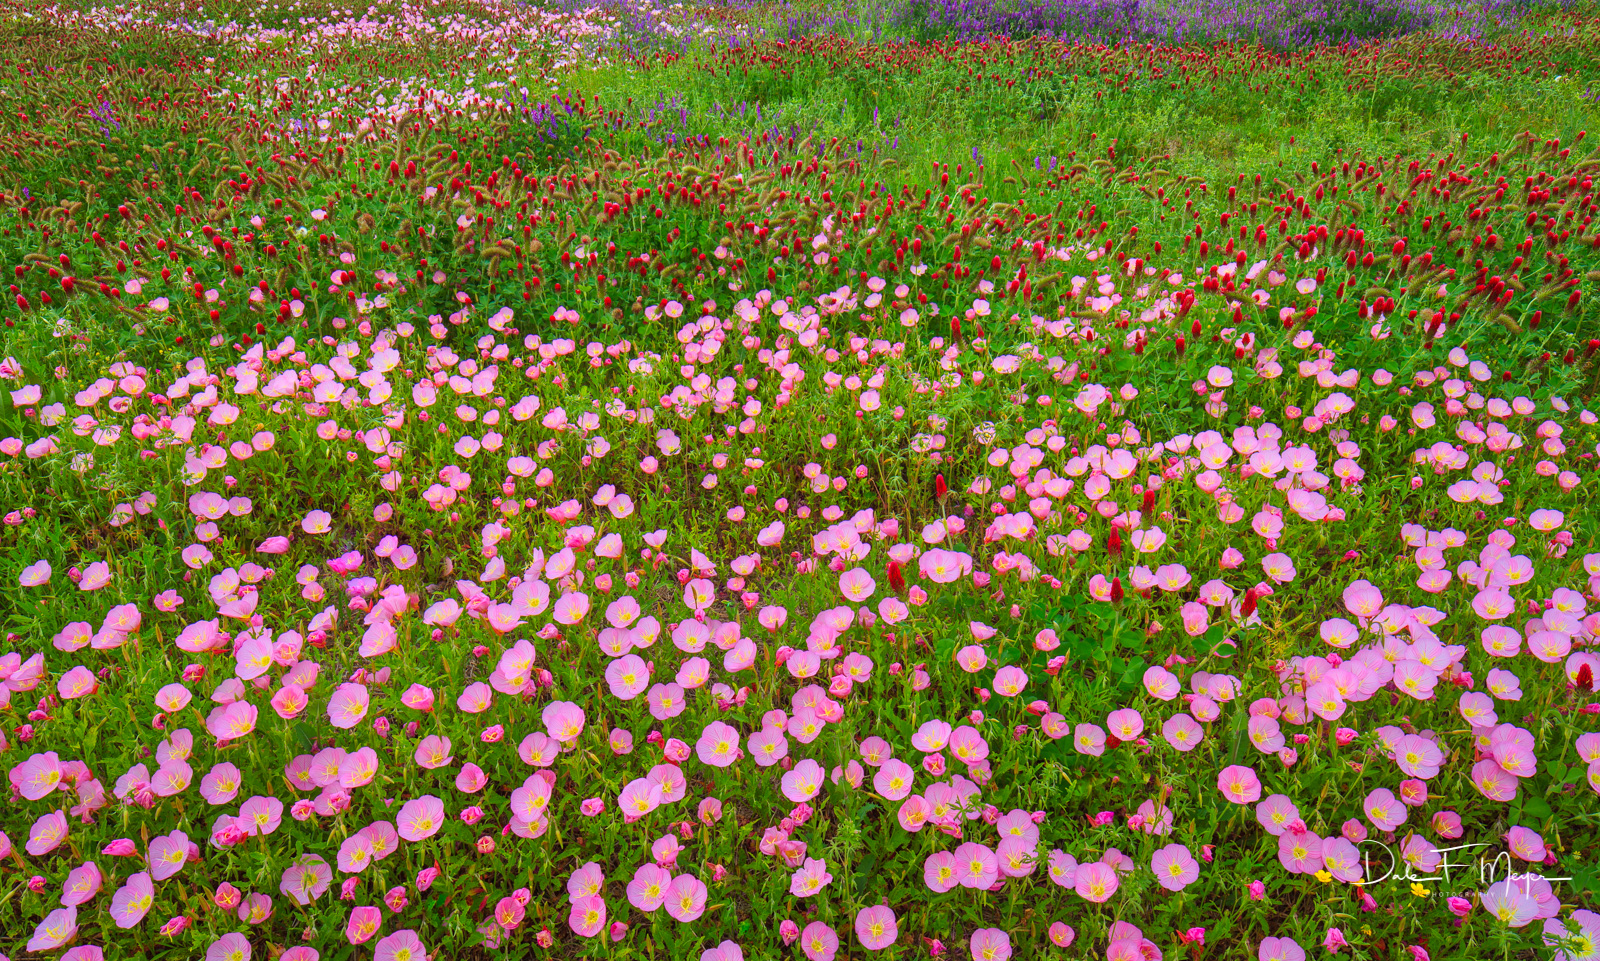 North Arkansas,Showy Evening Primrose,blue bells,crimson clover,flowers,spring 2012,wildflower meadow, photo